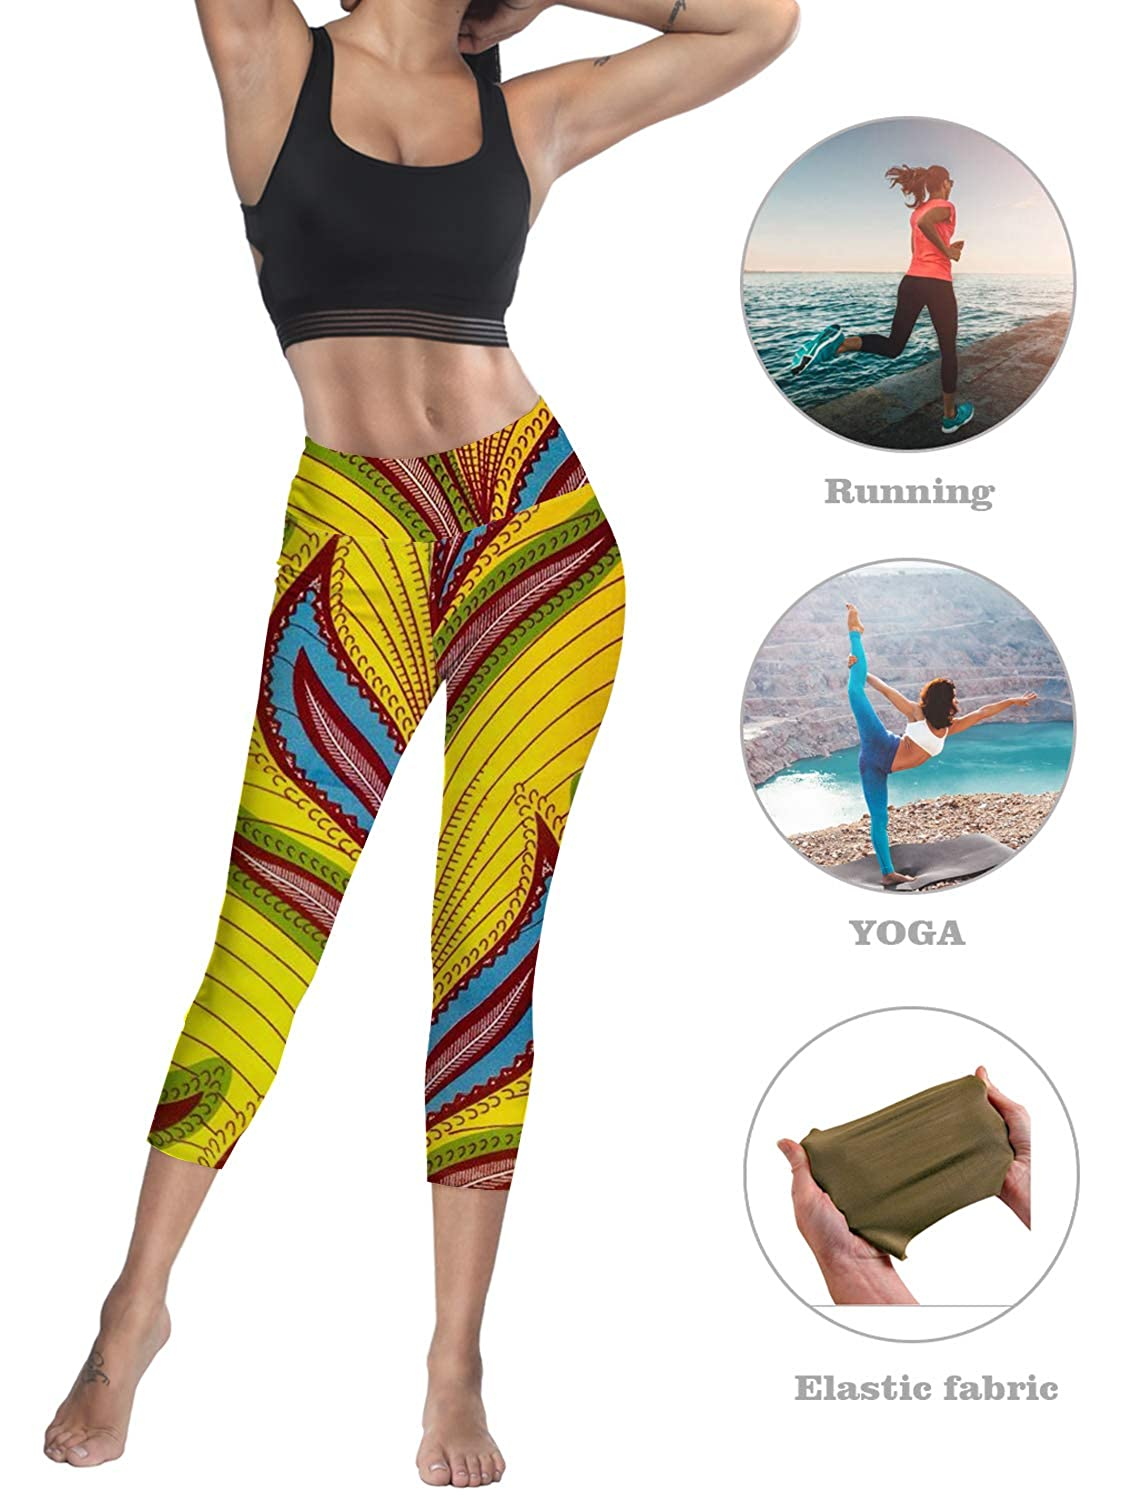 SODIKA Compression Yoga Pants Stretch Workout Leggings High Waist Tummy Control Abstract Leaves